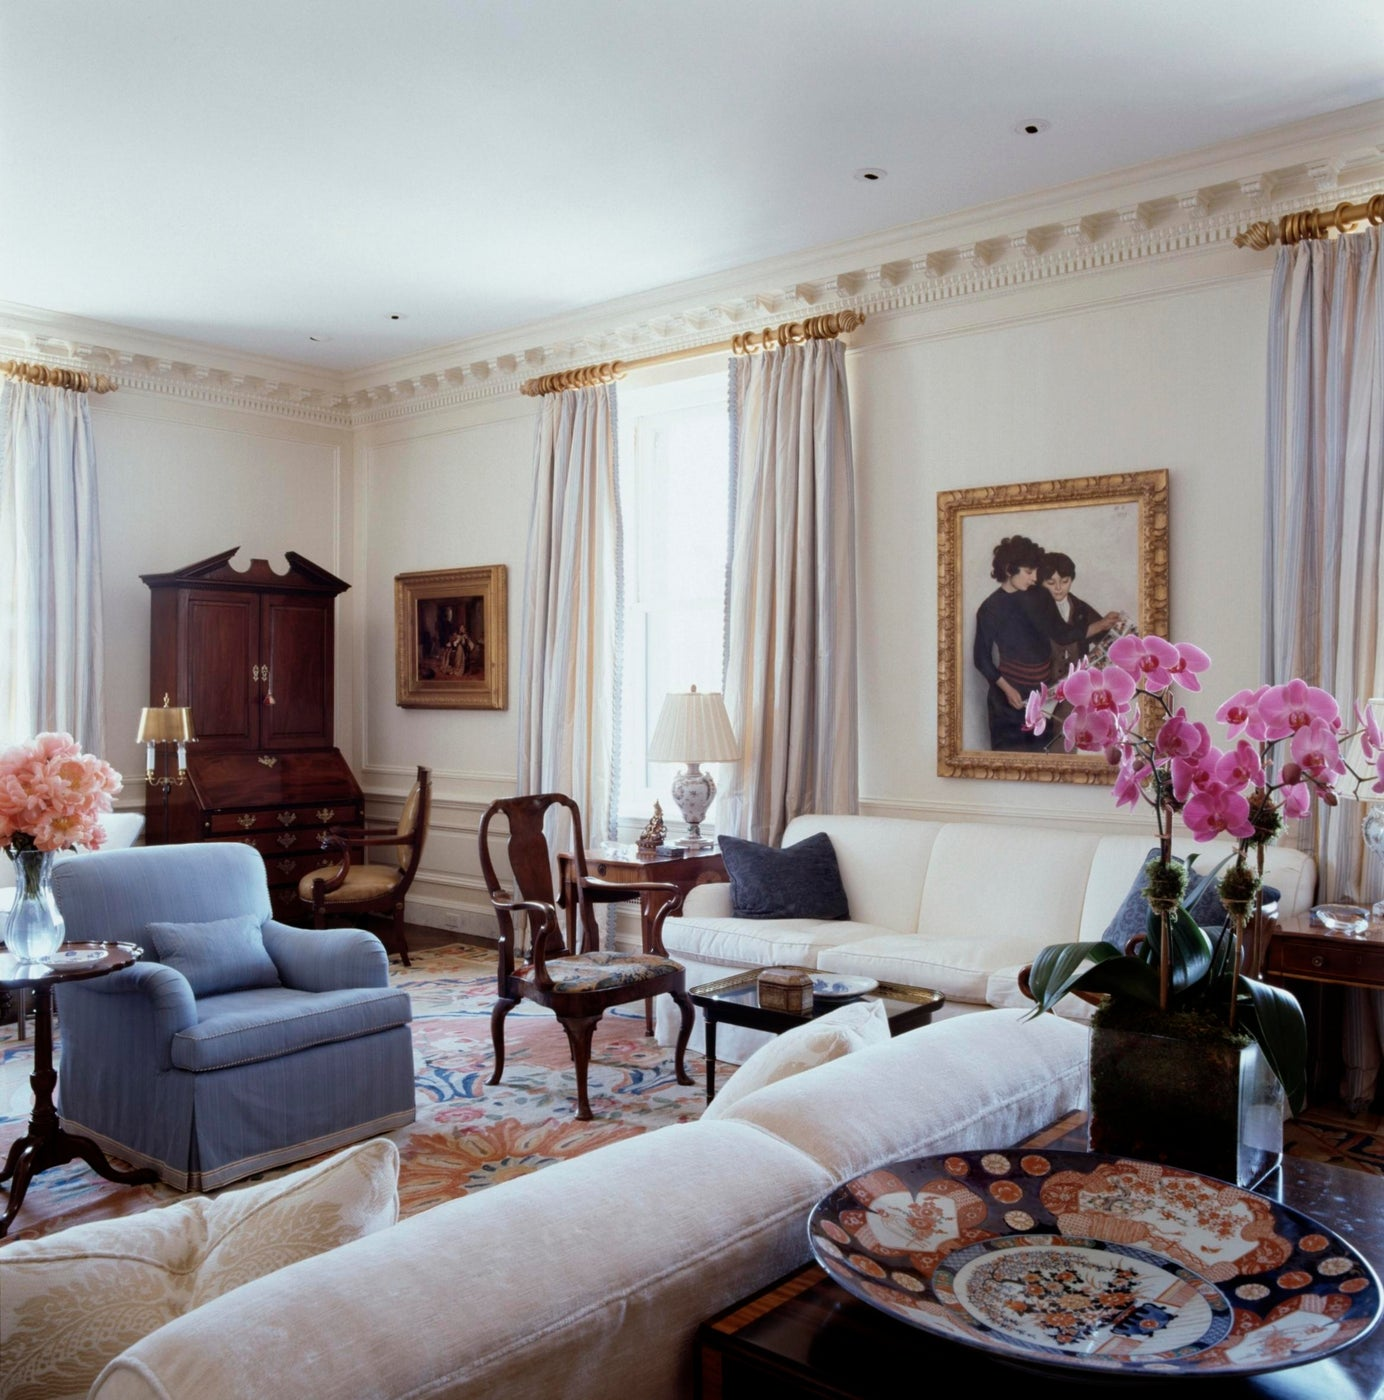 A completely renovated prewar livingroom with paneling and plaster cornices